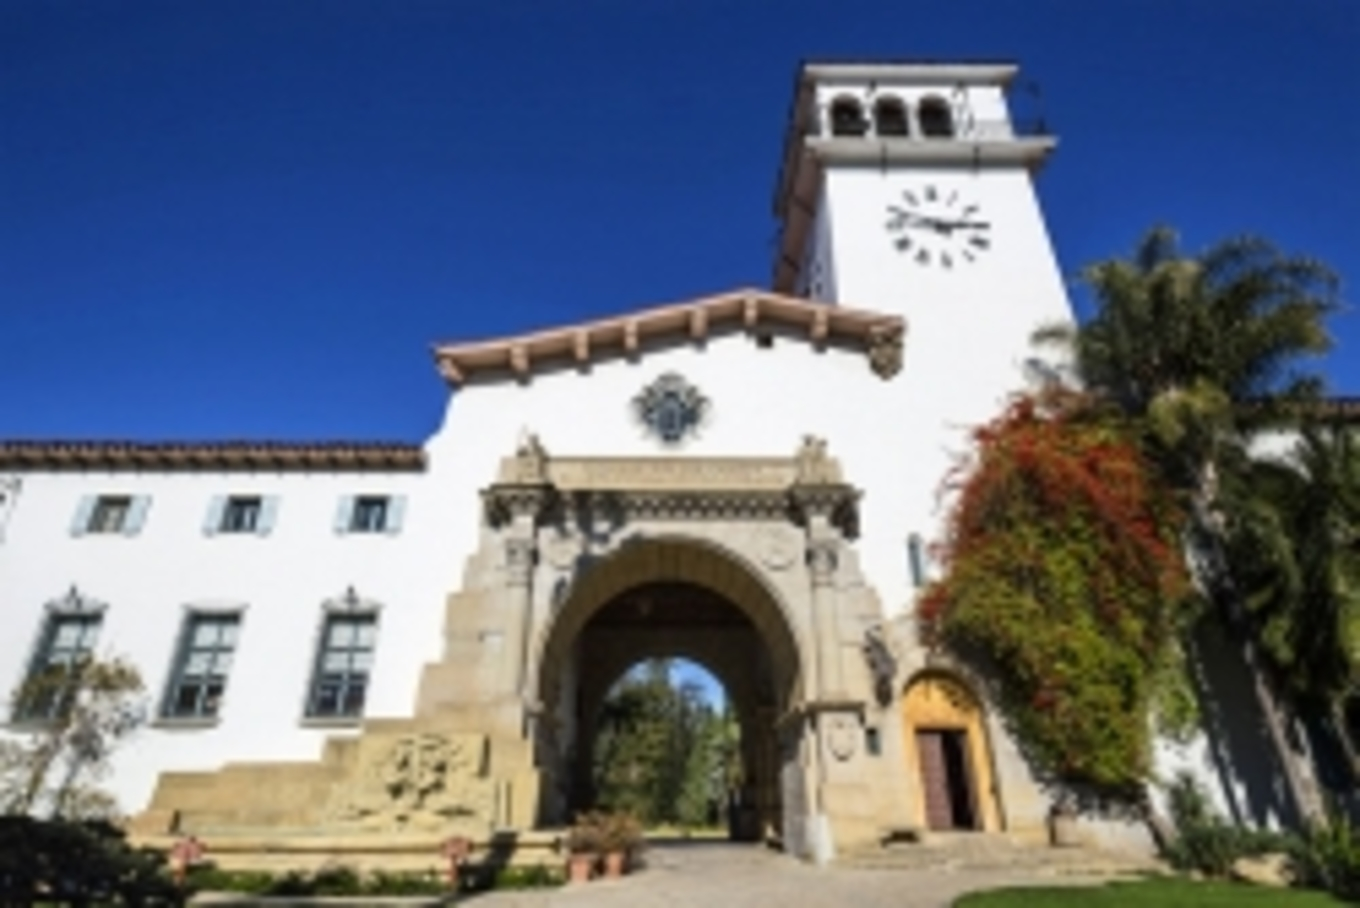 Santa barbara county jail visiting hours / Cyber monday cell phone cases